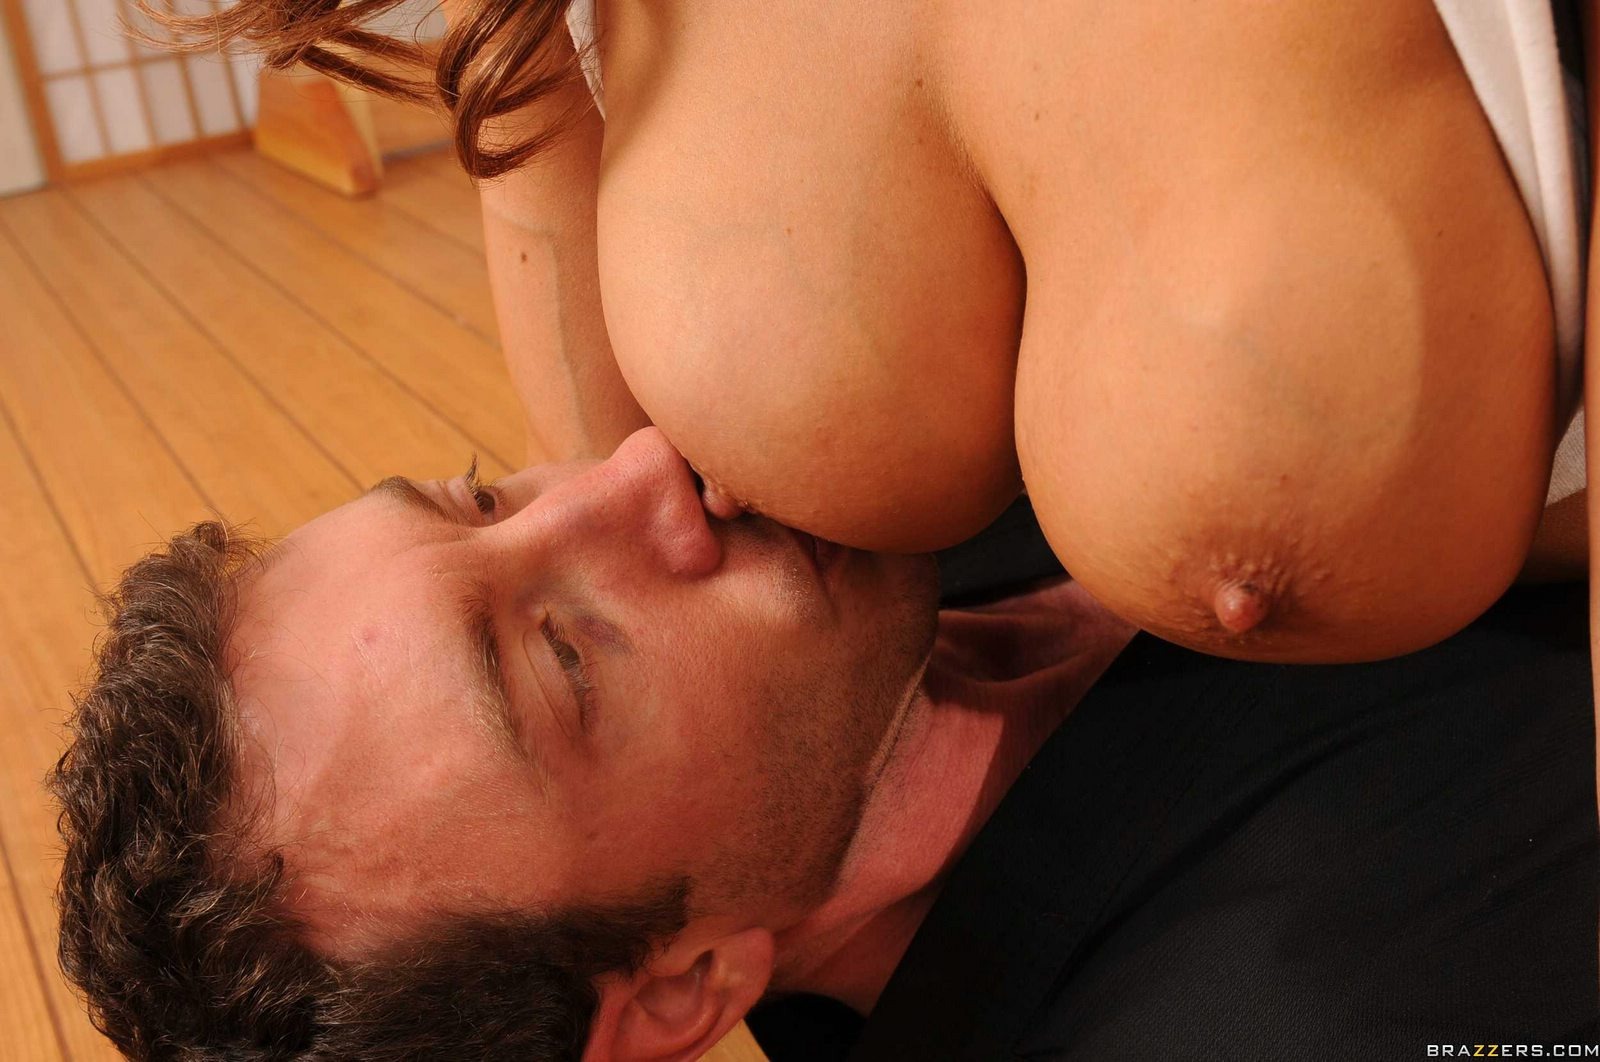 Guys giving themselves a blow job